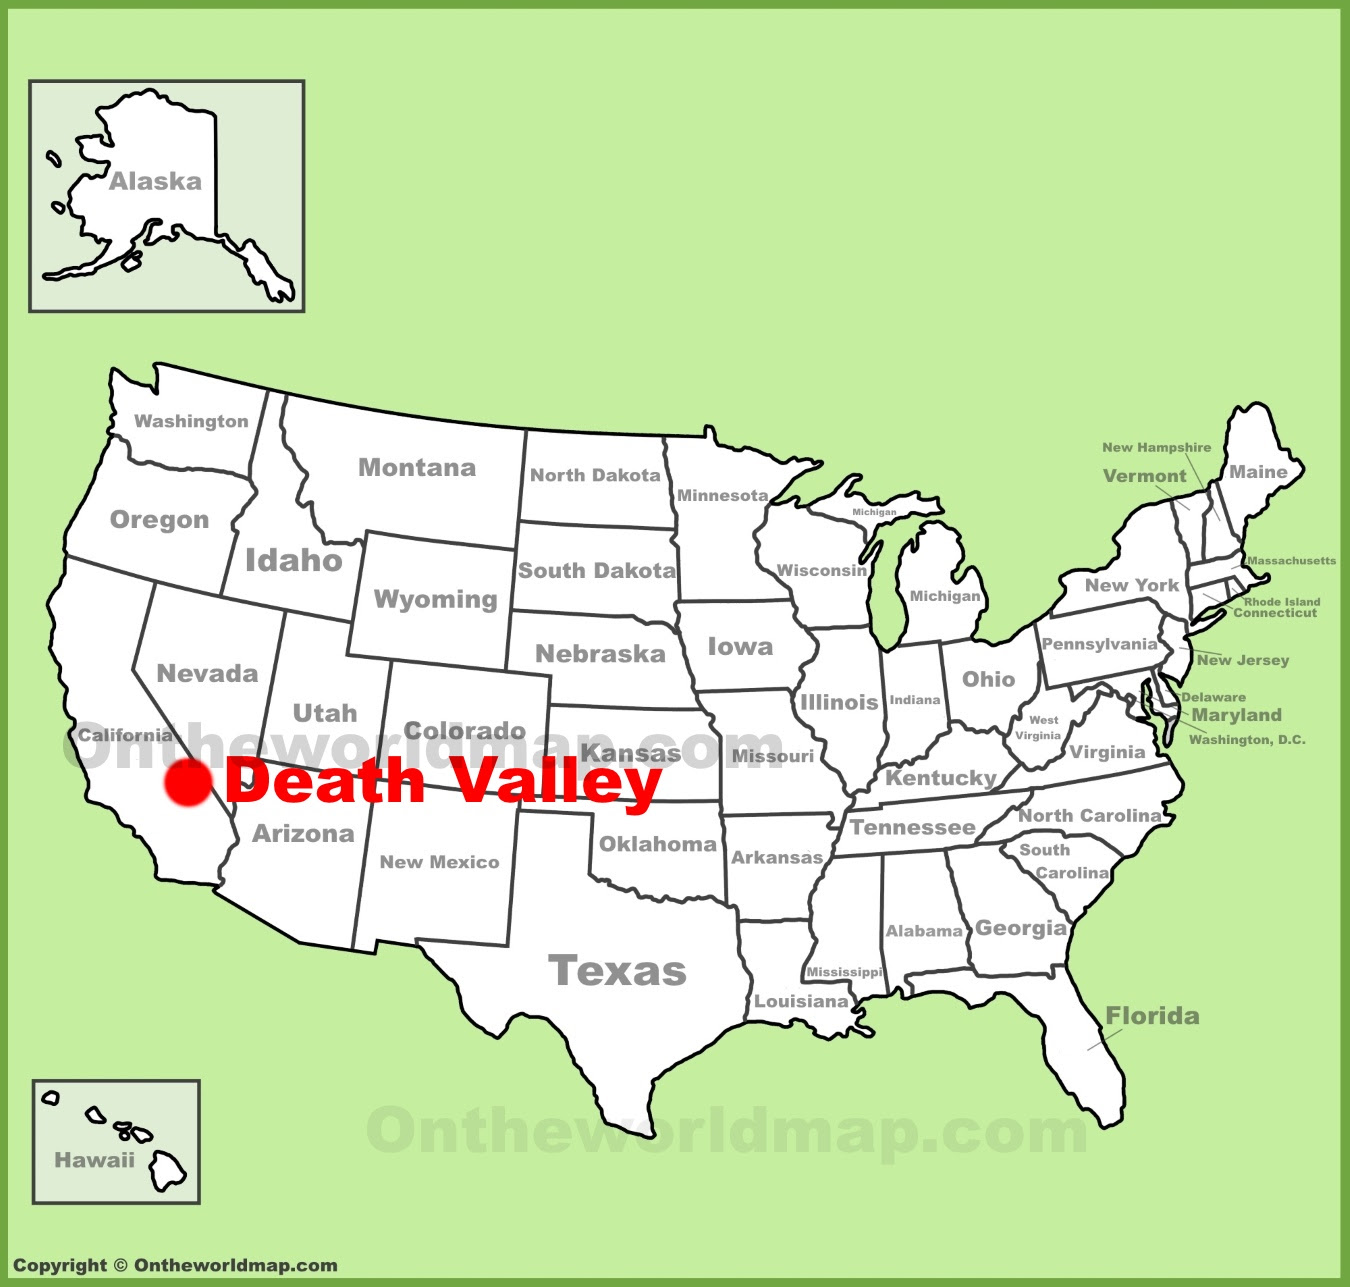 death valley location on the us map